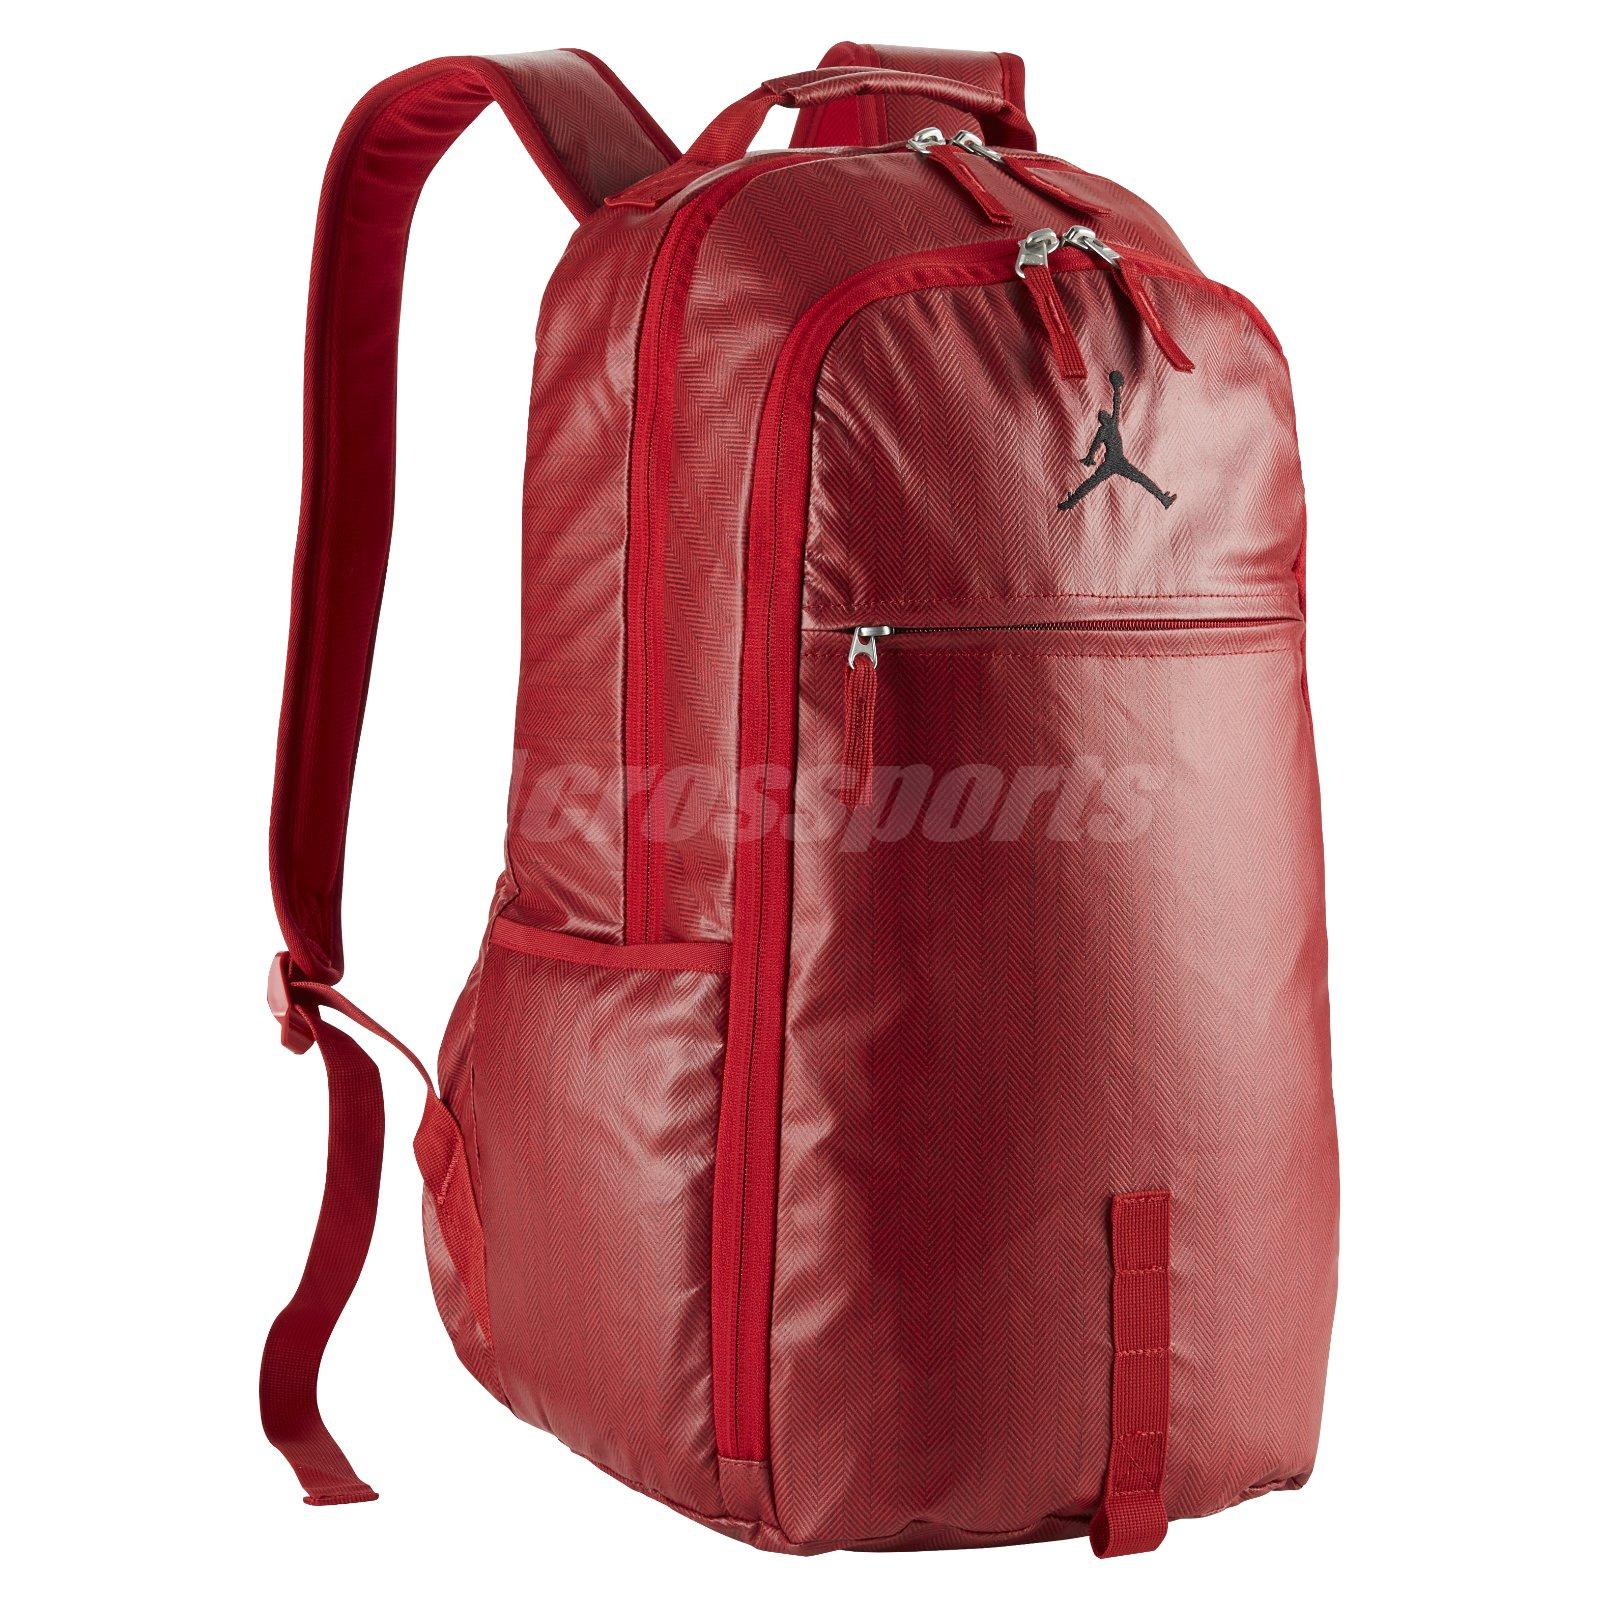 f45c0559348 Buy all jordan backpacks > up to 52% Discounts